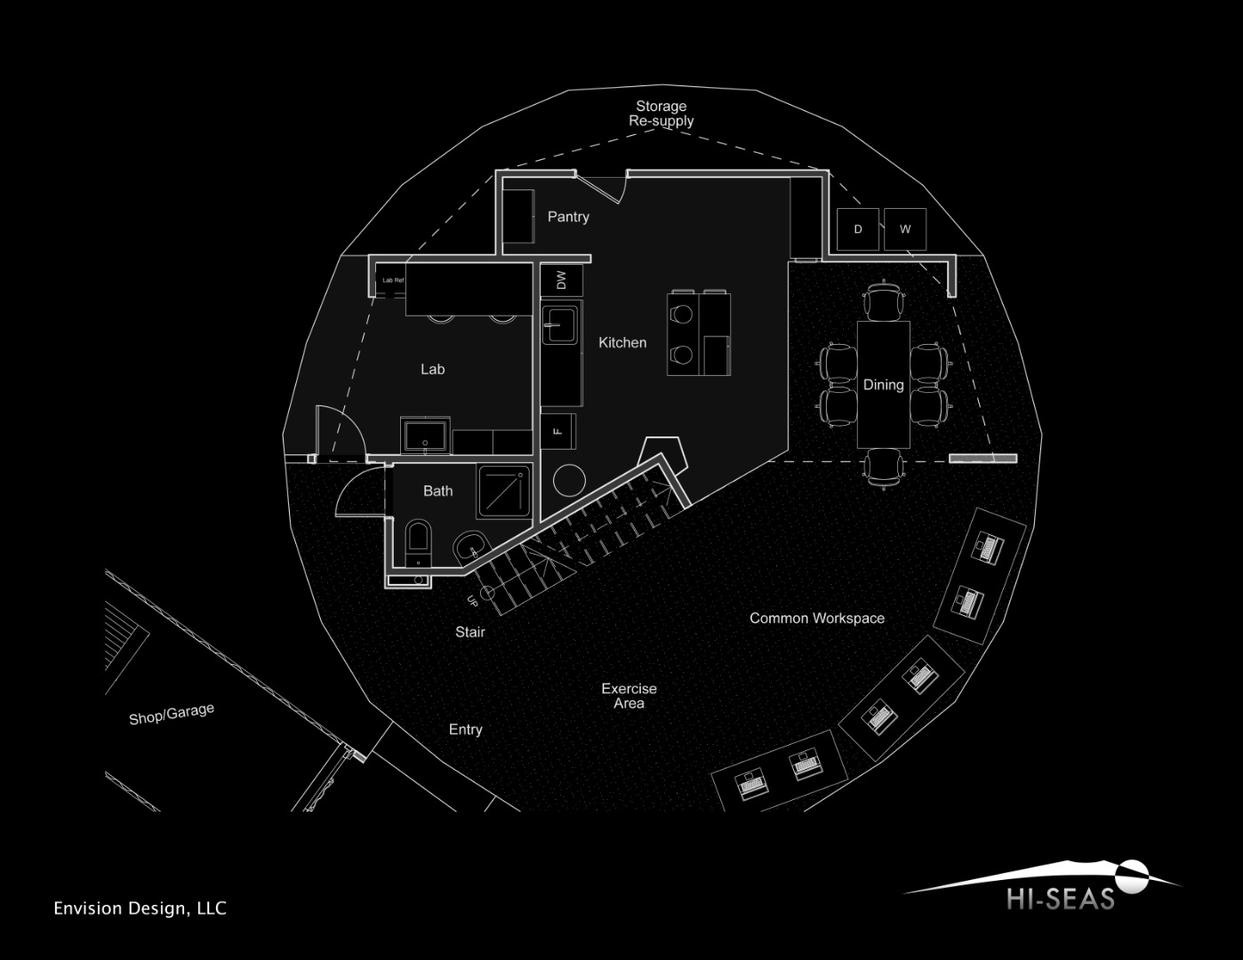 Lower level of the dome plan